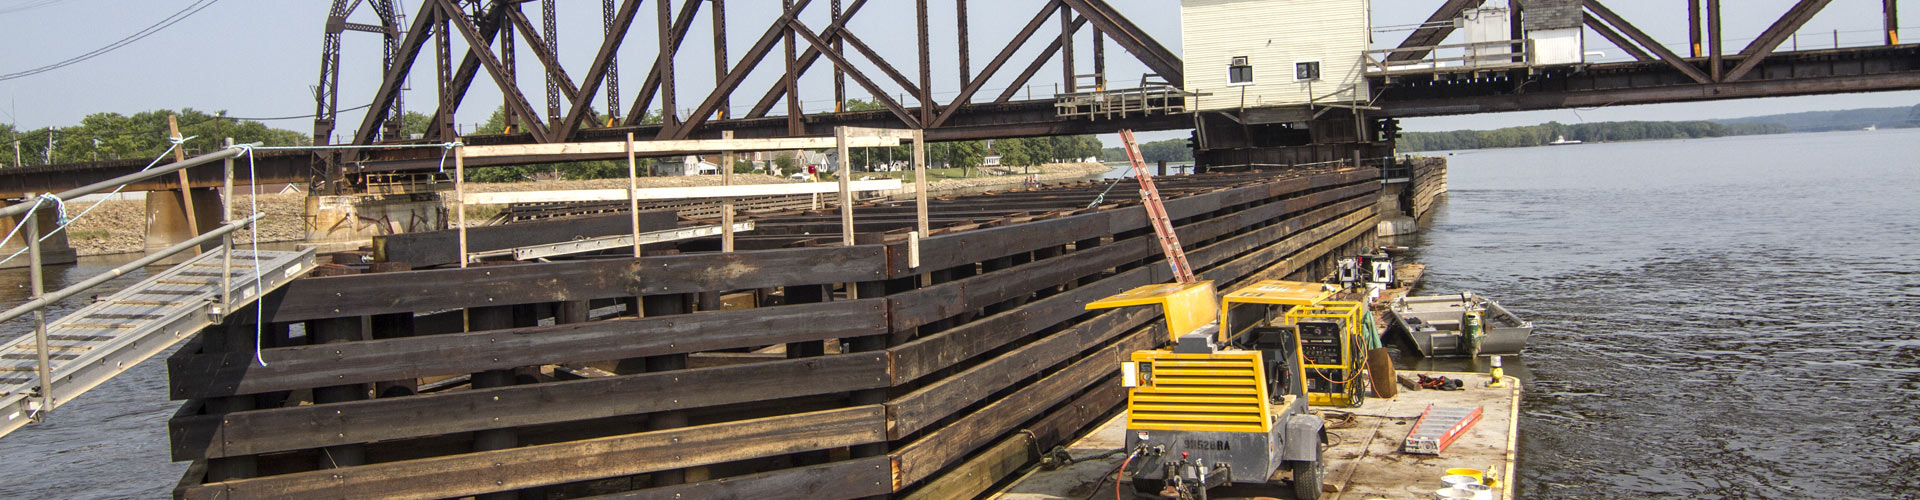 bridge demolition, timber cribbing repairs, railroad bridge fender systems, railroad bridge repairs, railroad contractor